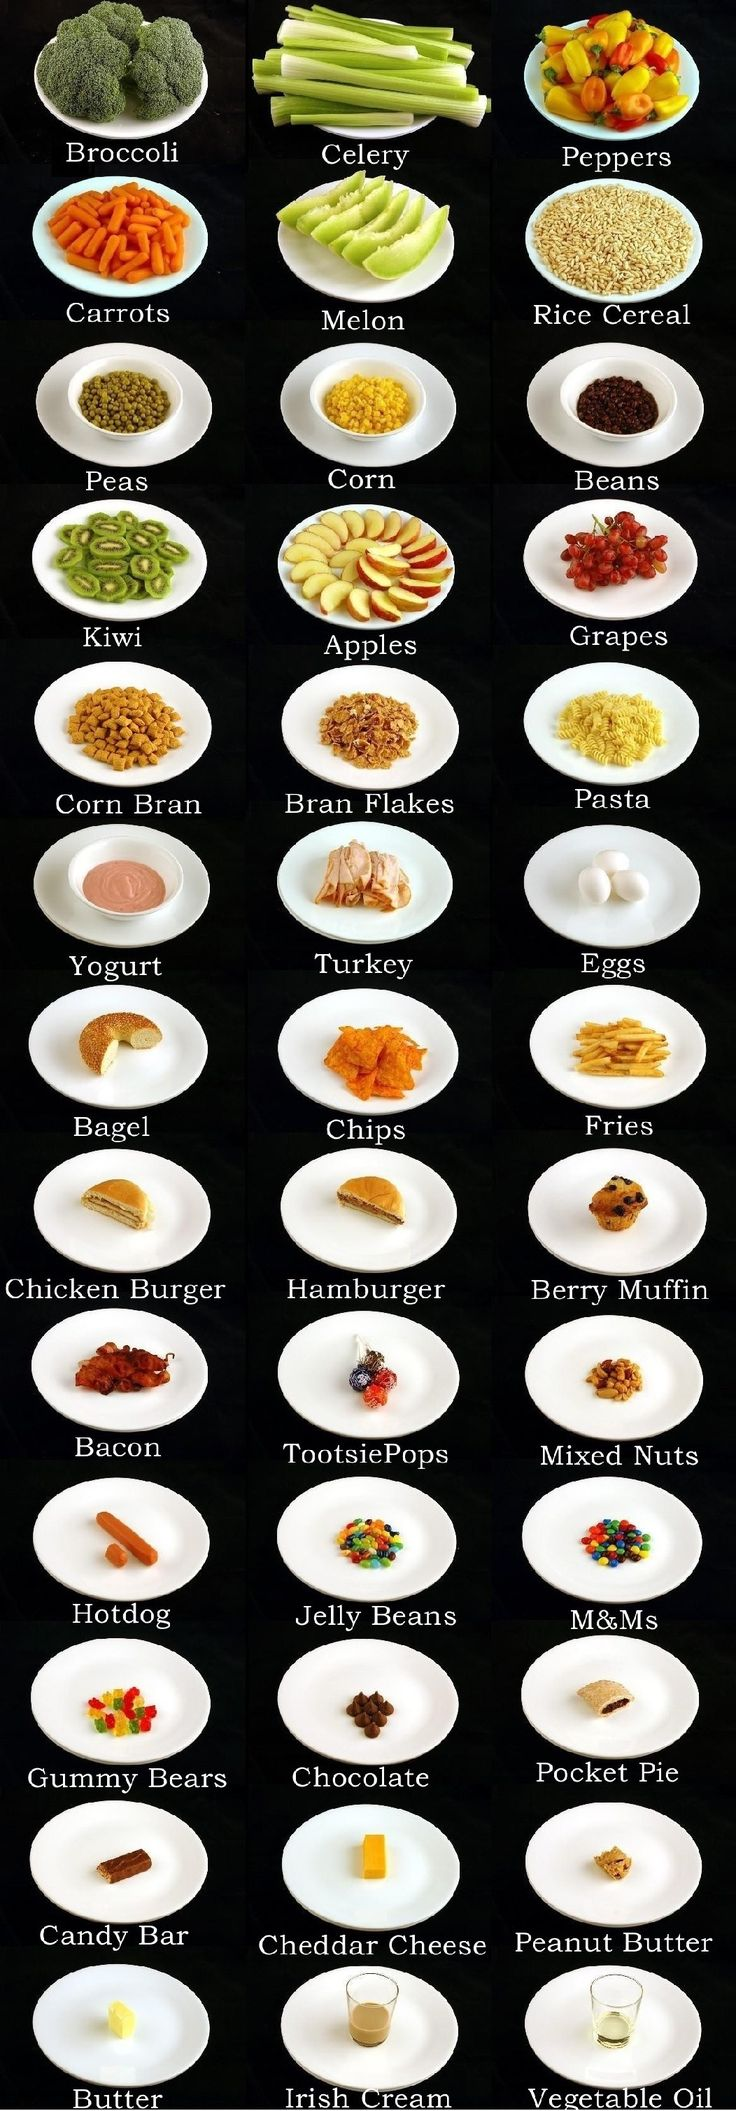 Each plate of food represents 100 calories. See how your favorites compare.